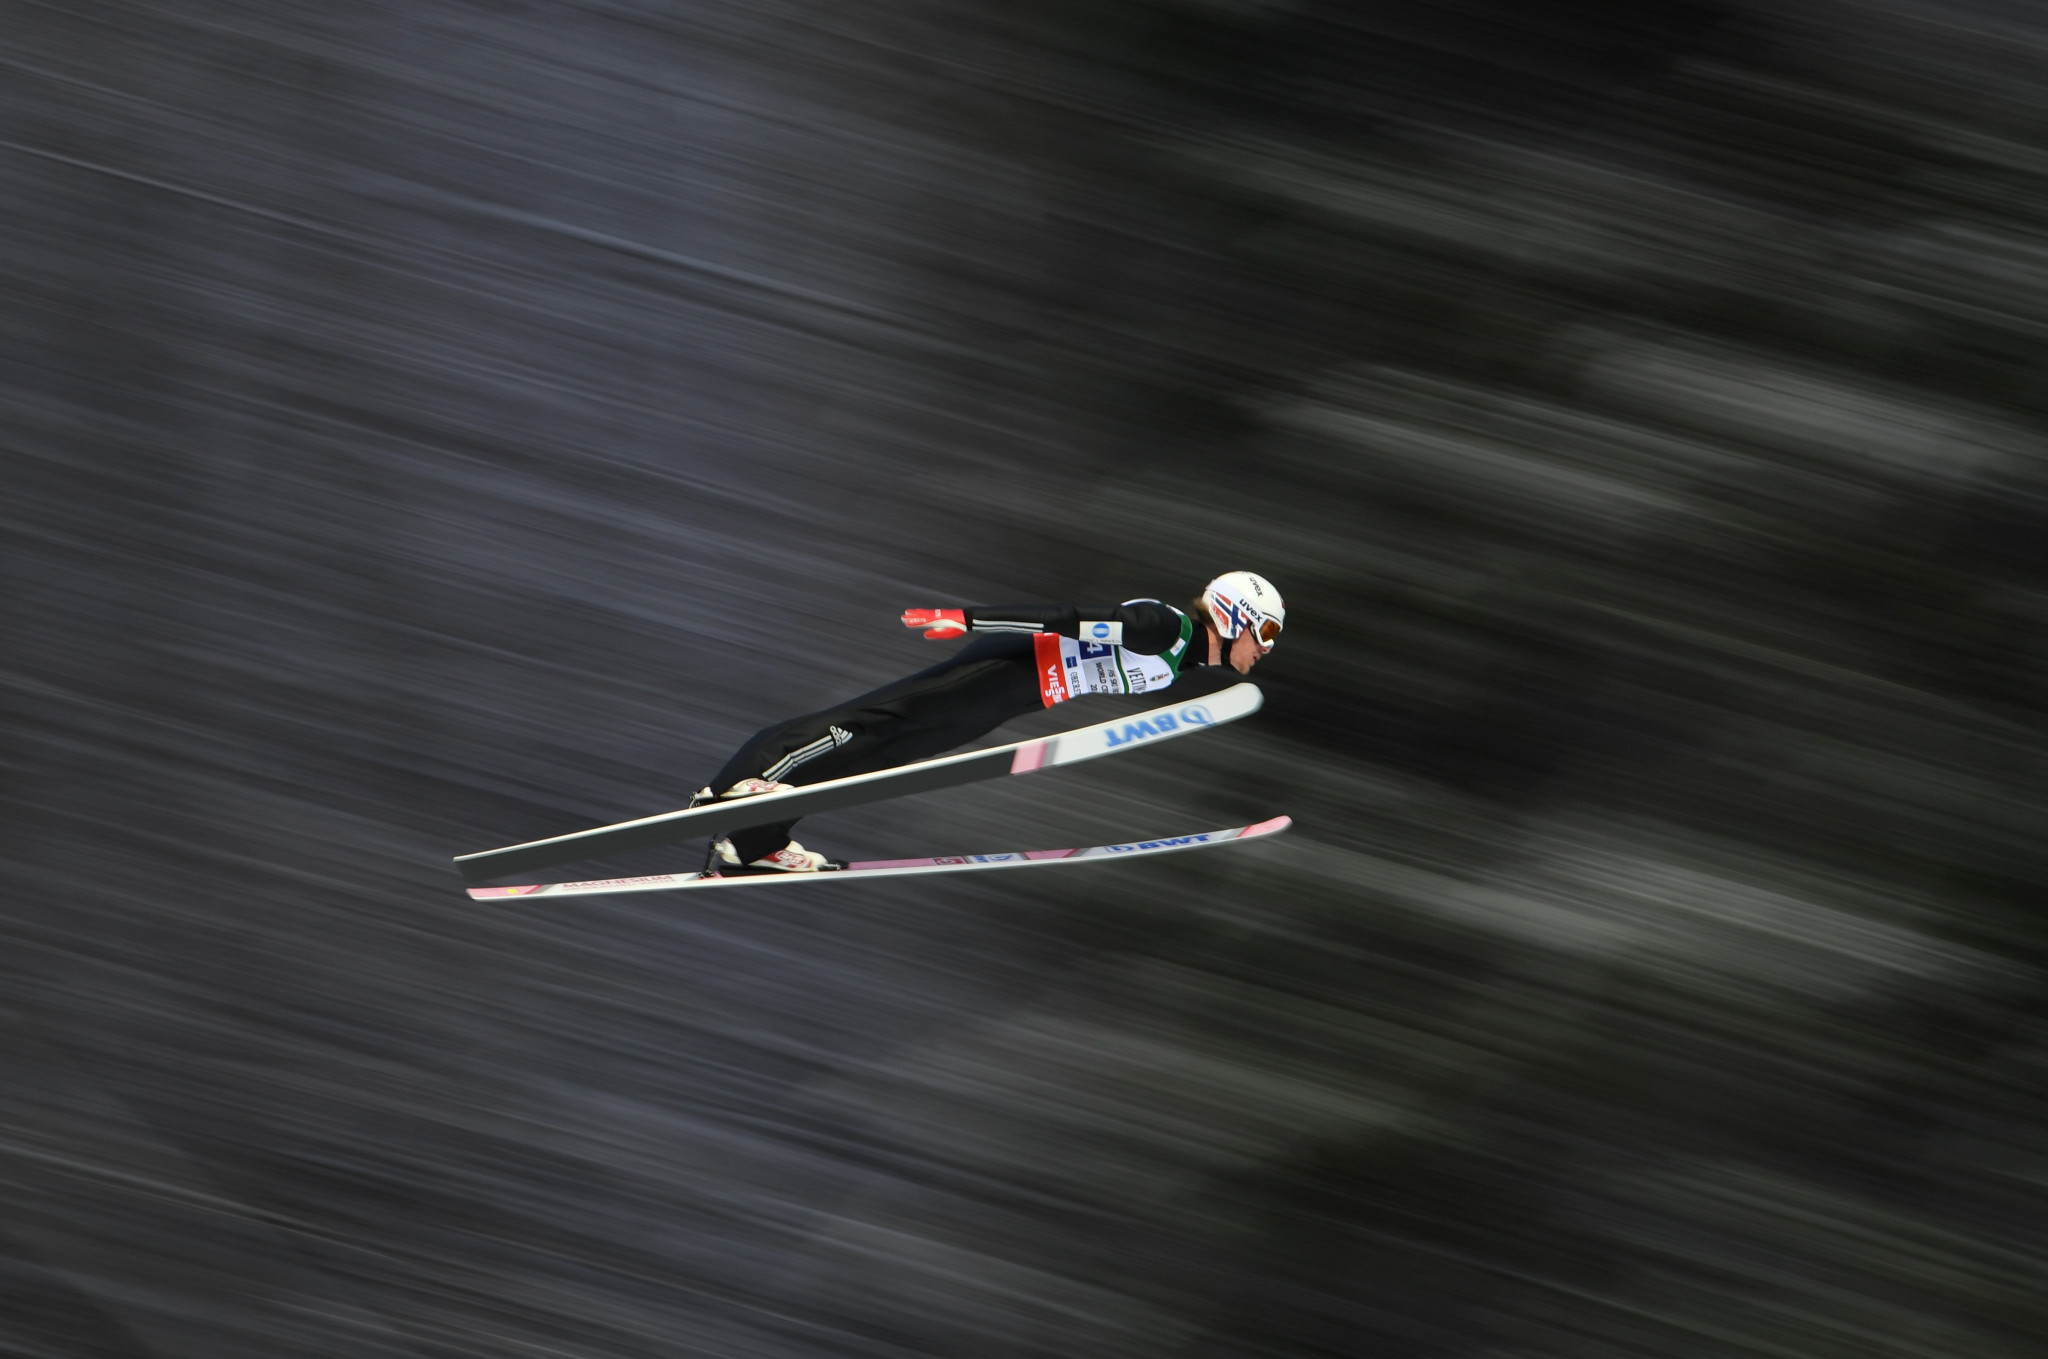 Norway's Daniel Andre Tande held off the challenge of home favourite Richard Freitag to claim his first victory of the FIS Ski Jumping World Cup season in Willingen in Germany today ©Getty Images